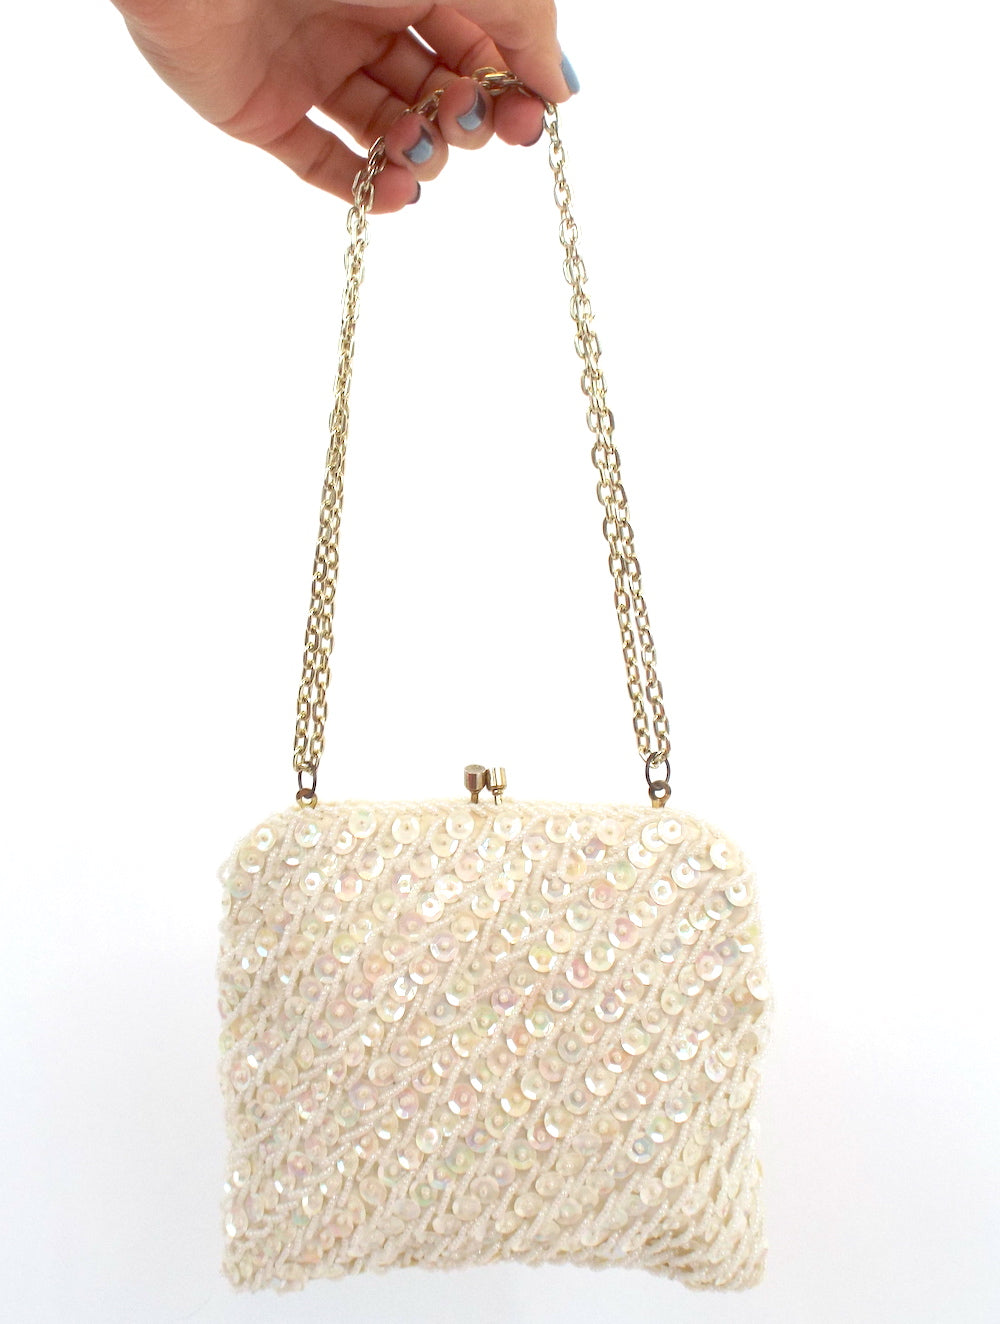 Vintage 80s White Beaded Shoulder Bag